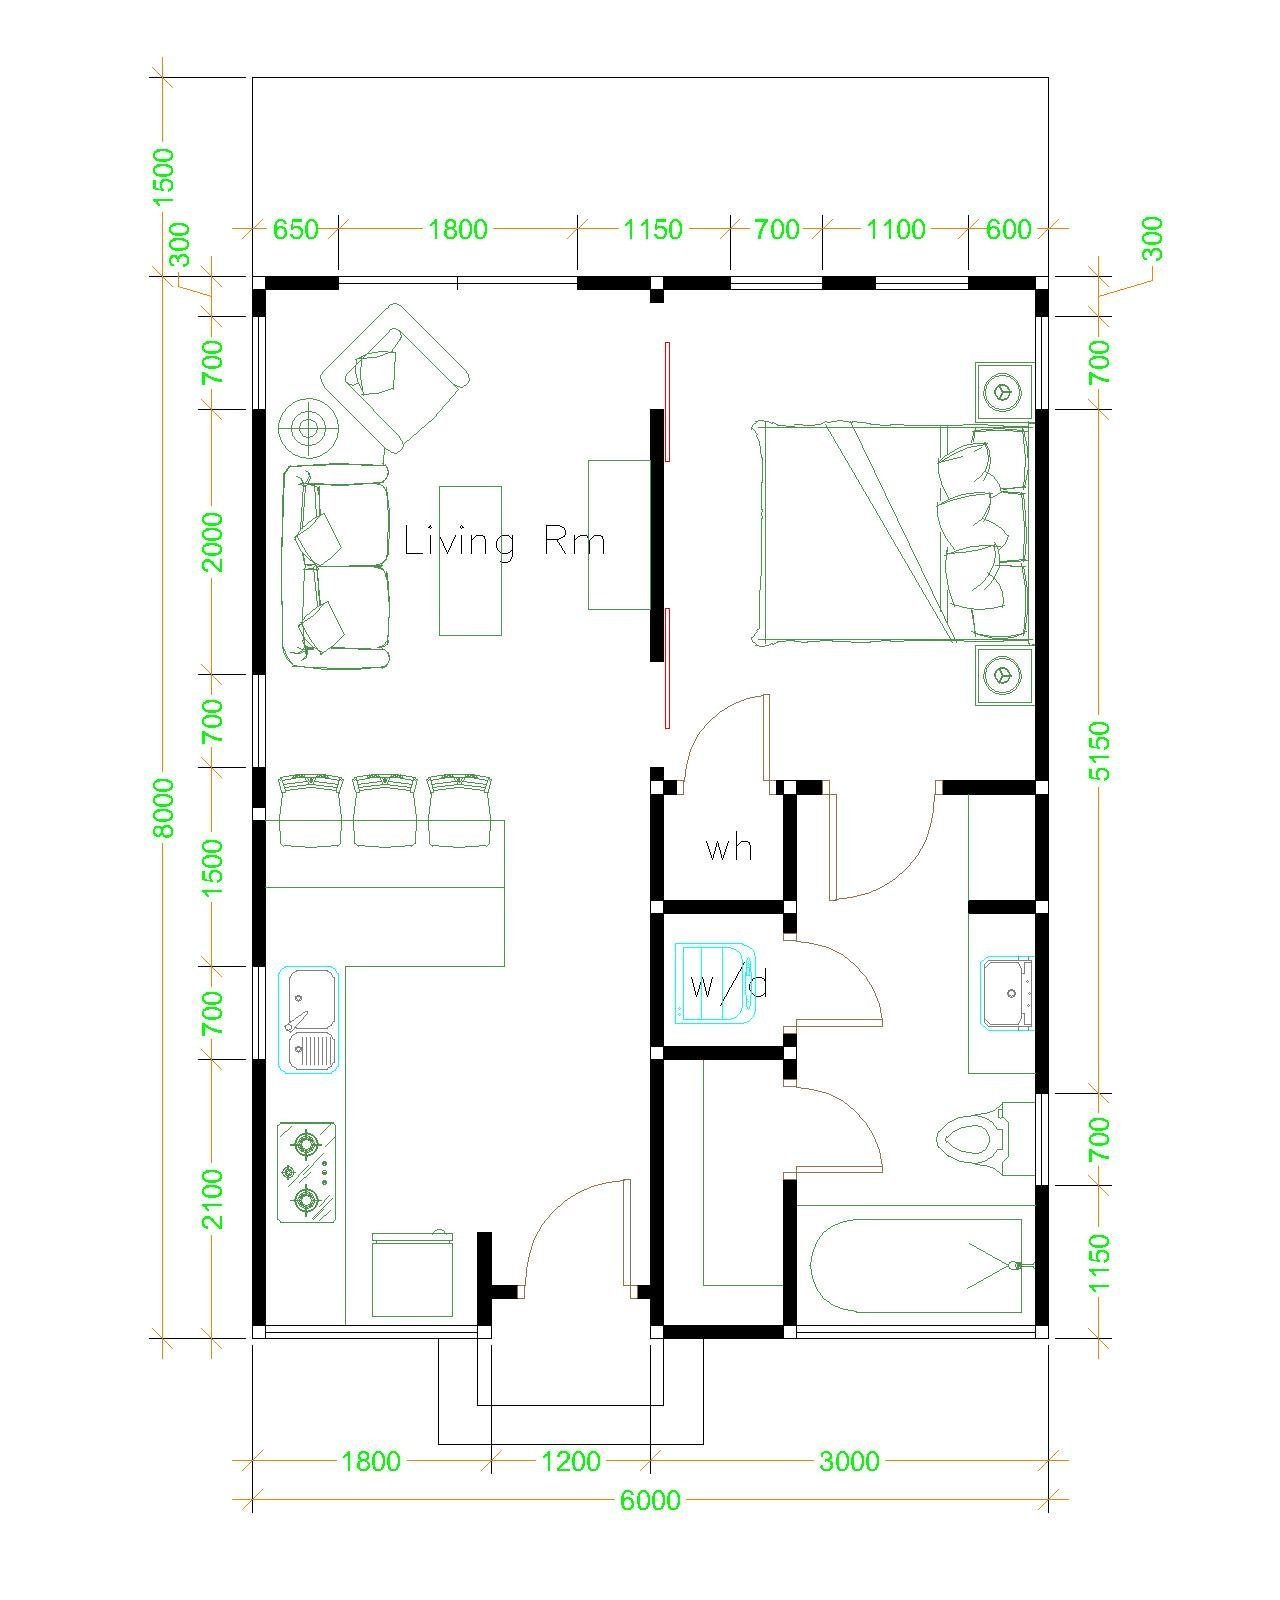 Studio House Plans 6x8 Shed Roof Tiny House Plans Sheddach Haus Grundriss Grundriss